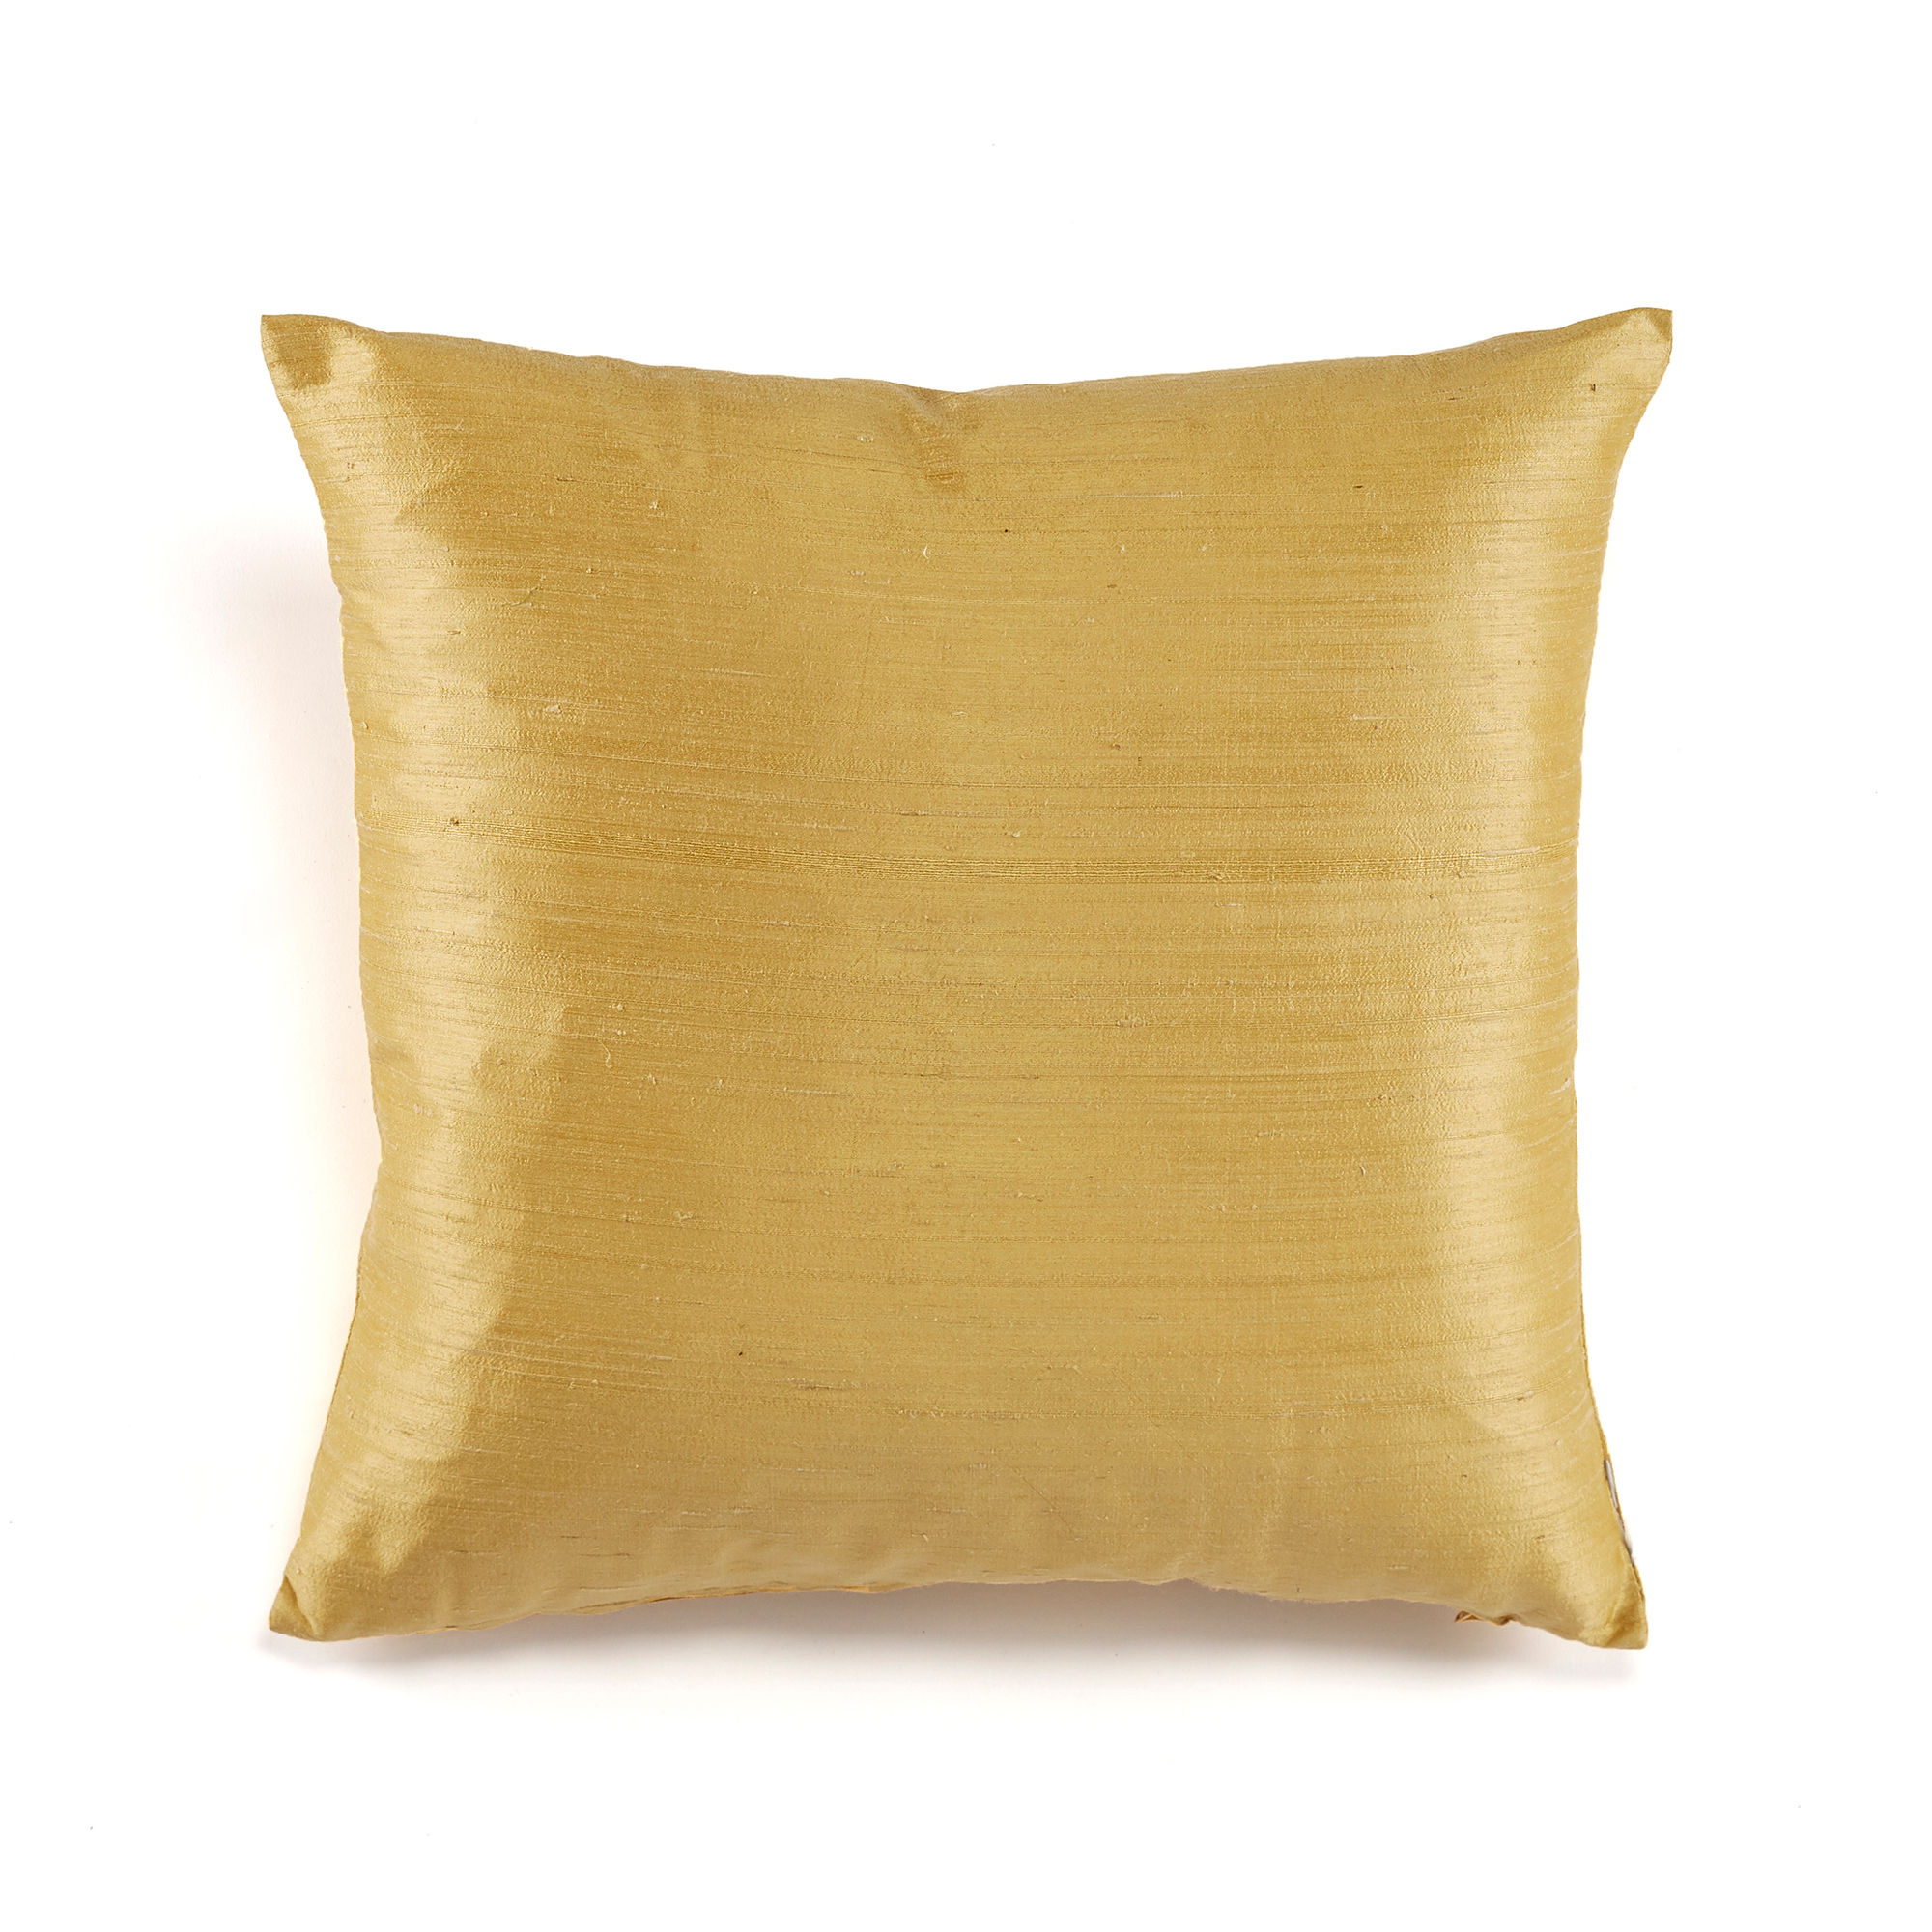 Dupioni Silk Pillows, Citron